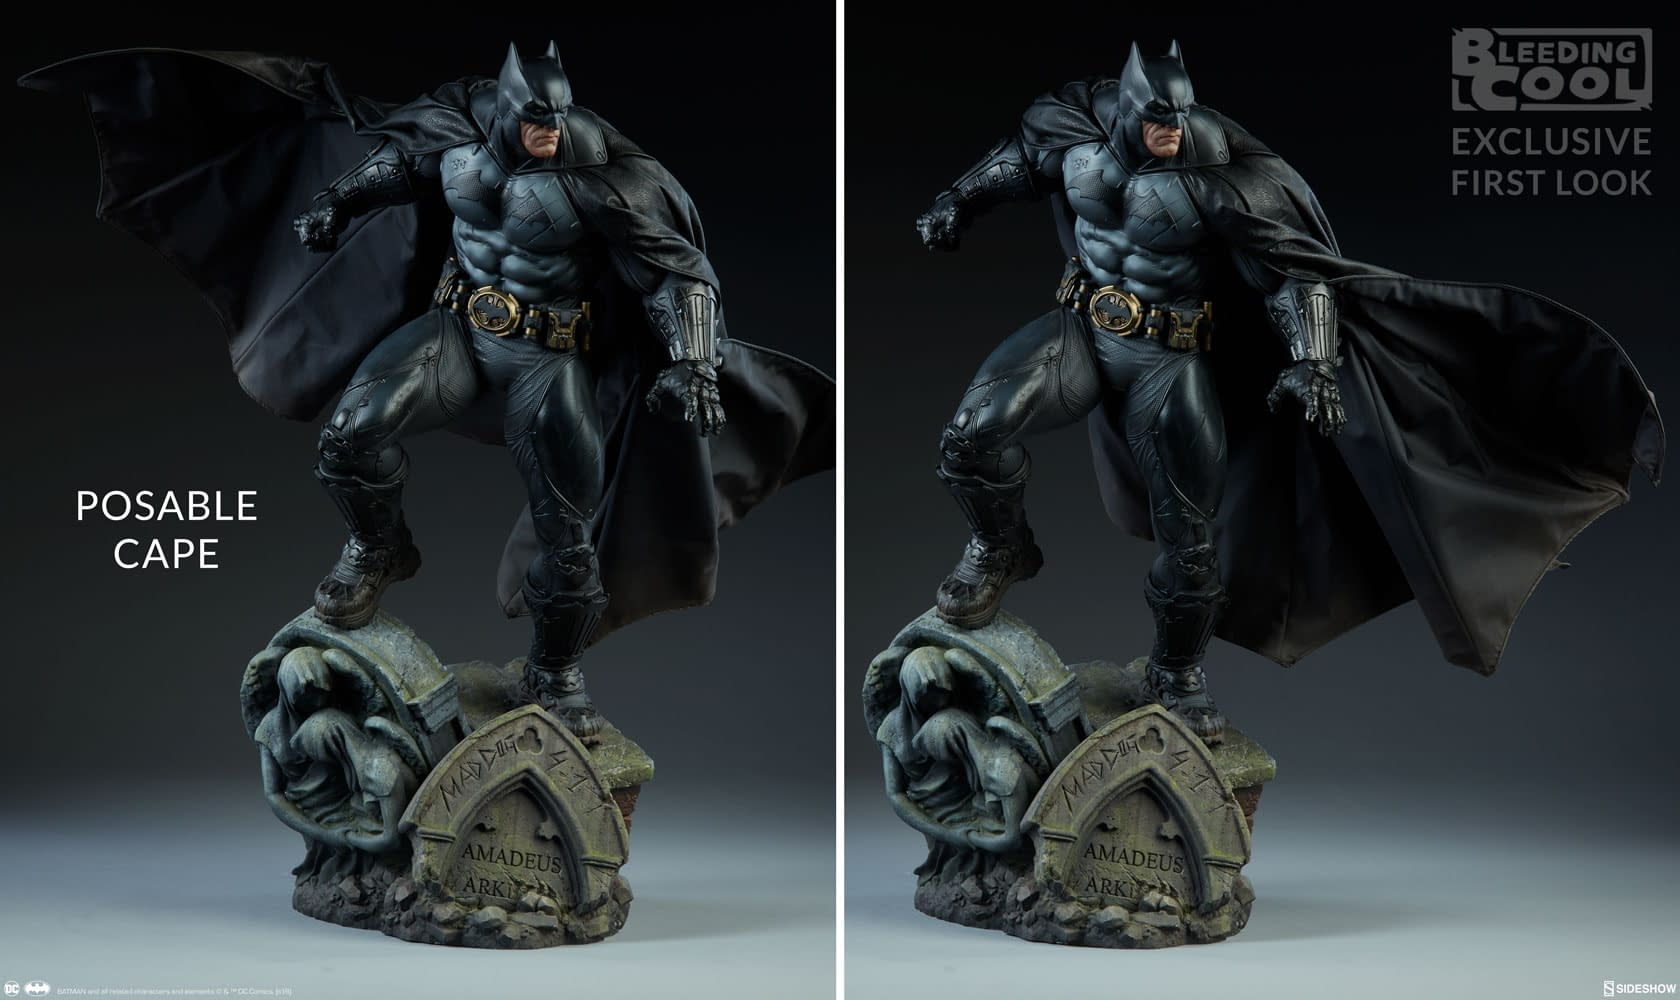 Sideshow Collectibles Premium Format Figure Reveal 2